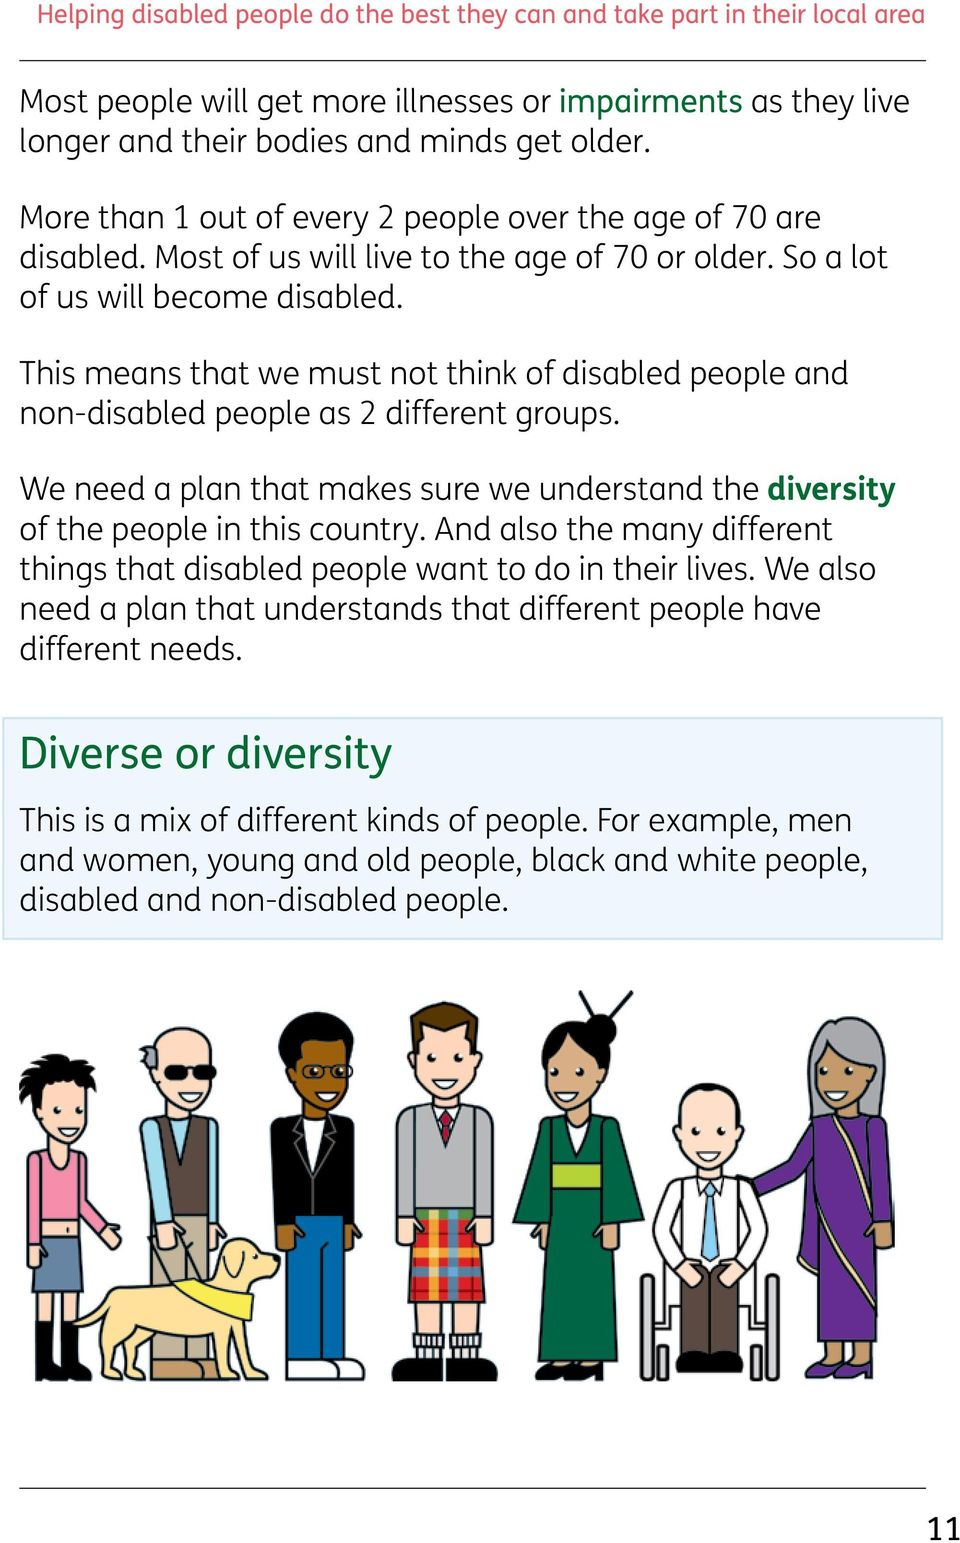 We need a plan that makes sure we understand the diversity of the people in this country. And also the many different things that disabled people want to do in their lives.